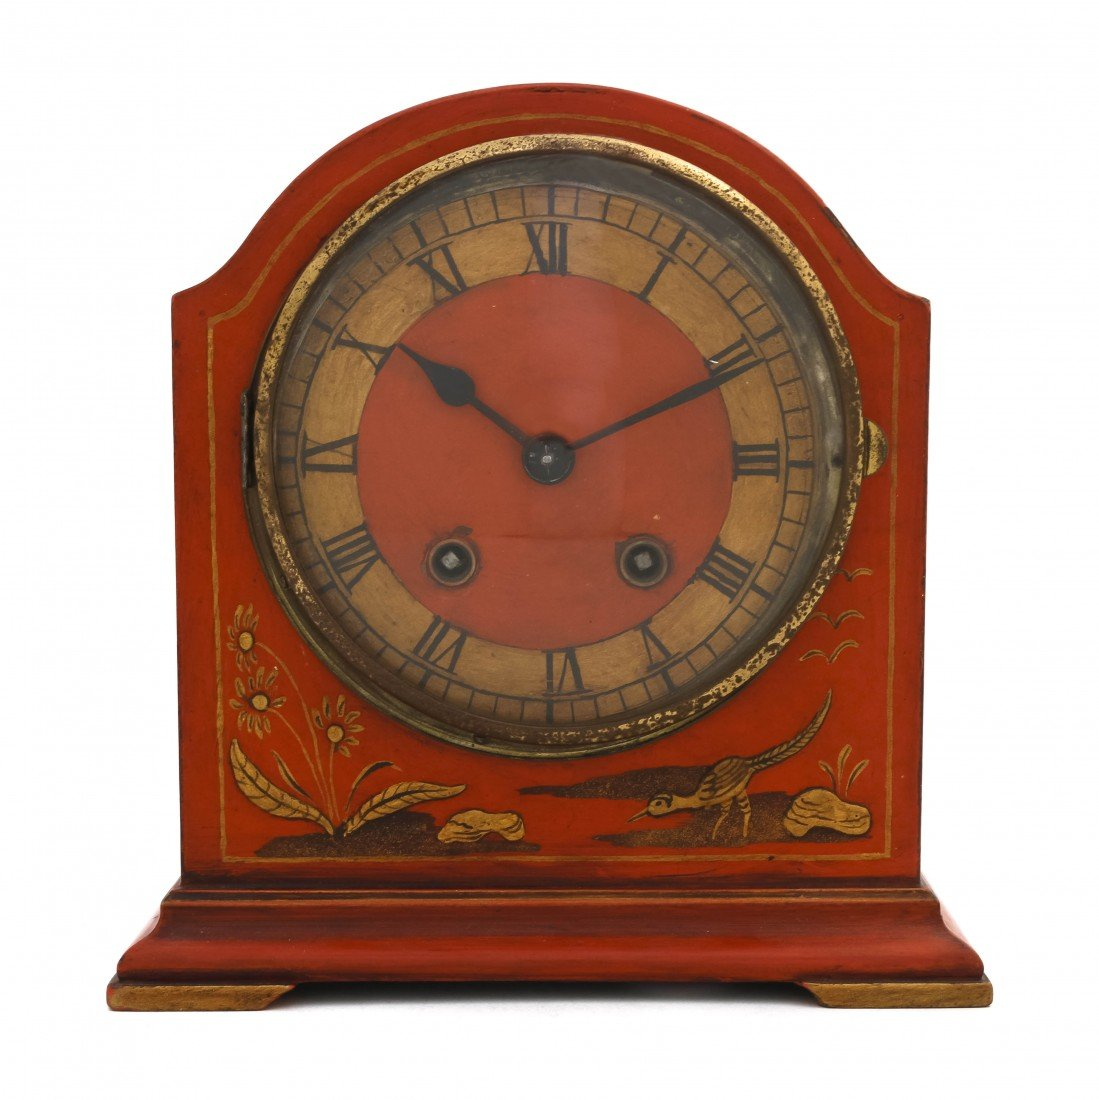 5: An English Lacquered Mantel Clock, Height 9 1/2 inch